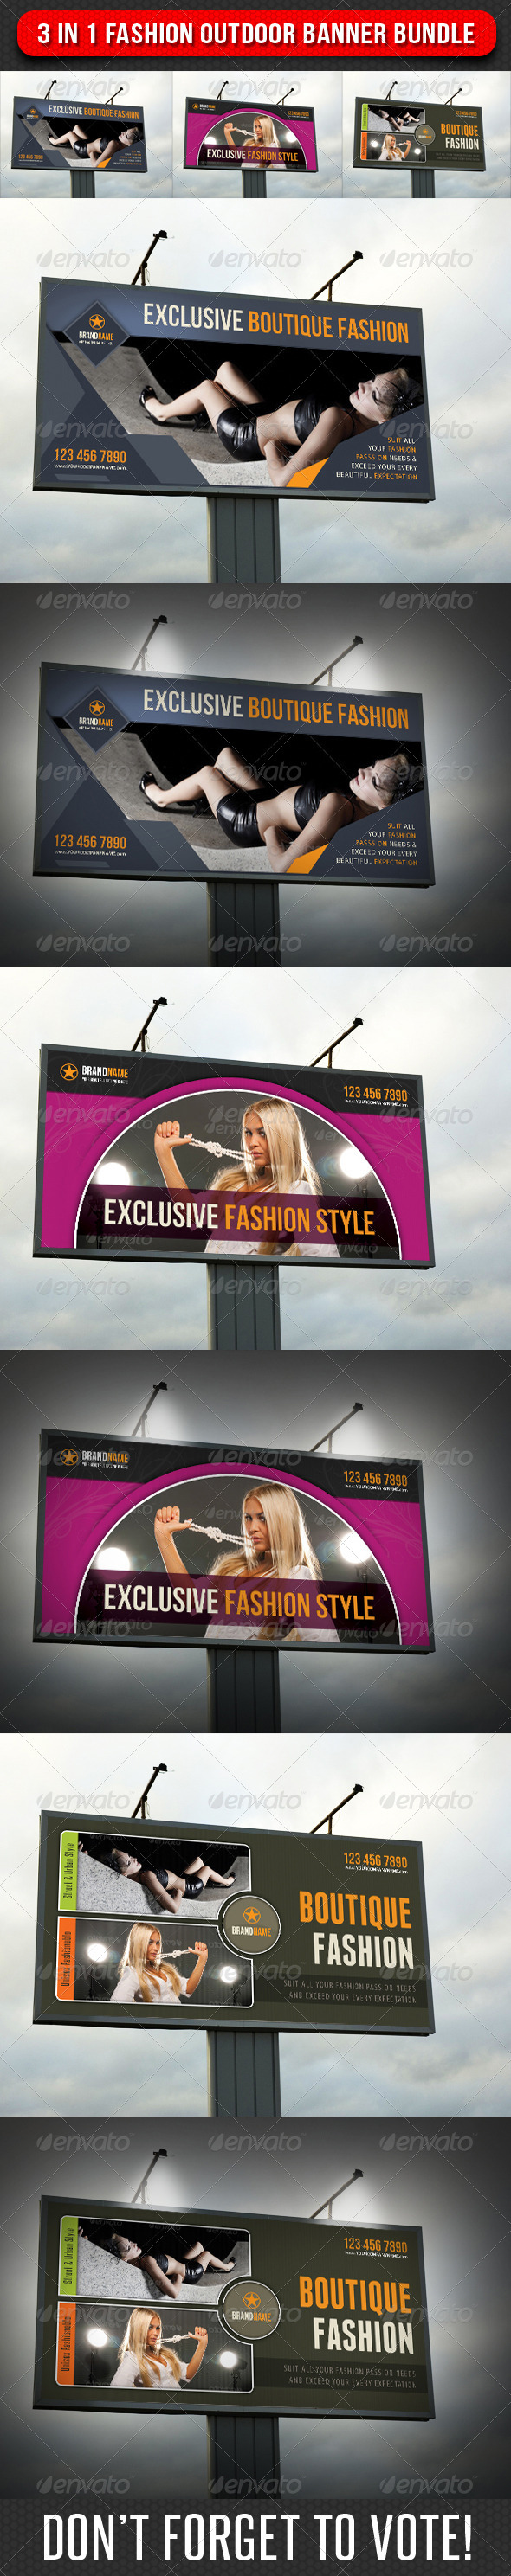 3 in 1 Fashion Outdoor Banner Bundle 01 - Signage Print Templates